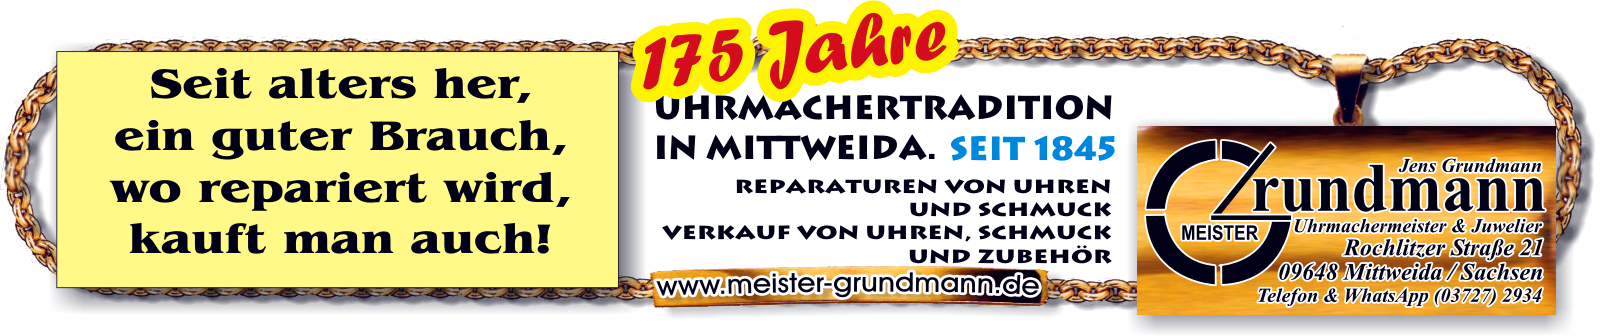 175 Jahre Uhrmachertradition in Mittweida